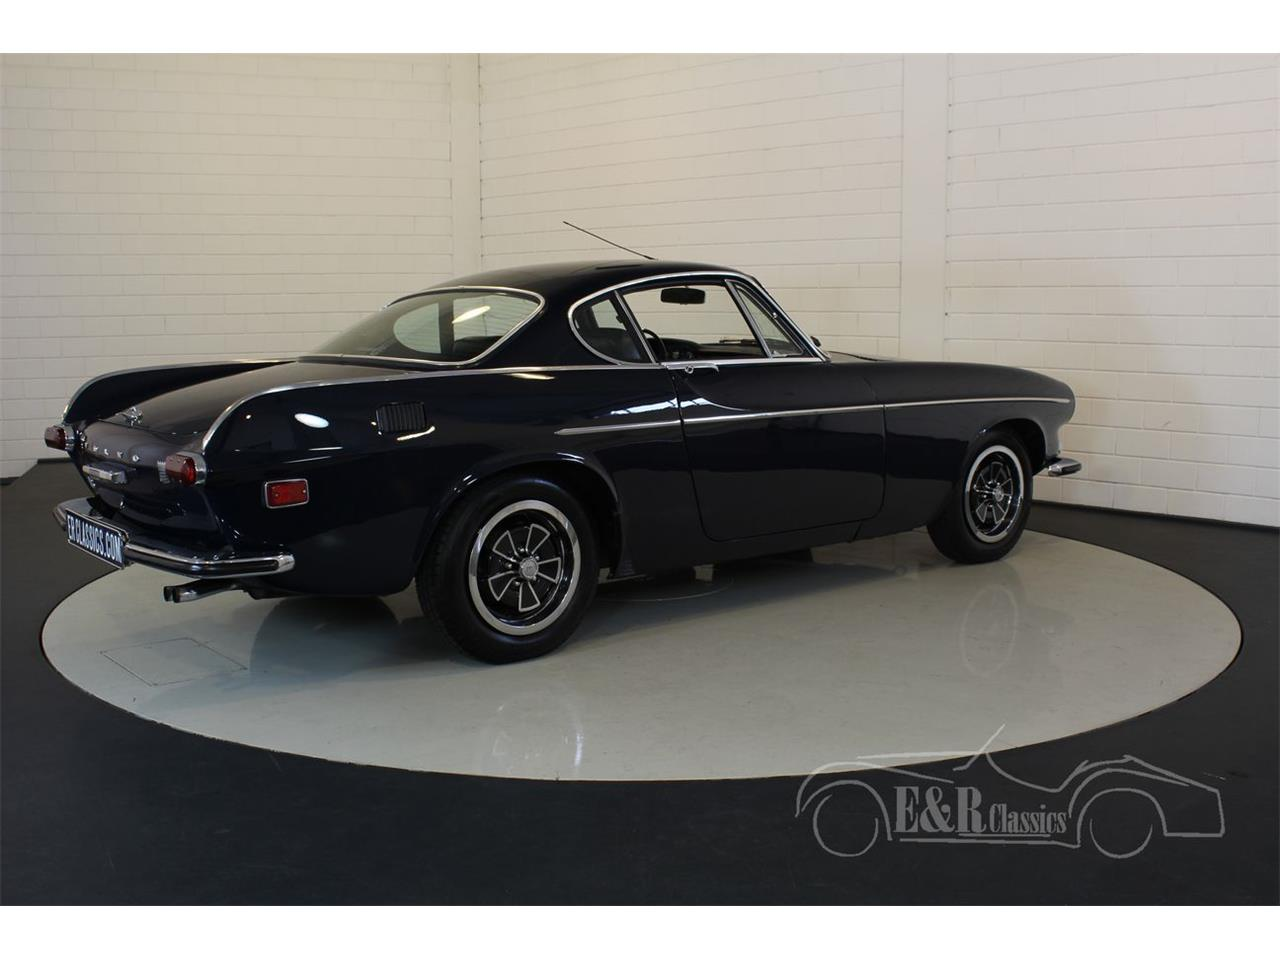 Large Picture of Classic 1971 Volvo P1800E located in Waalwijk noord brabant - $39,400.00 - Q95J